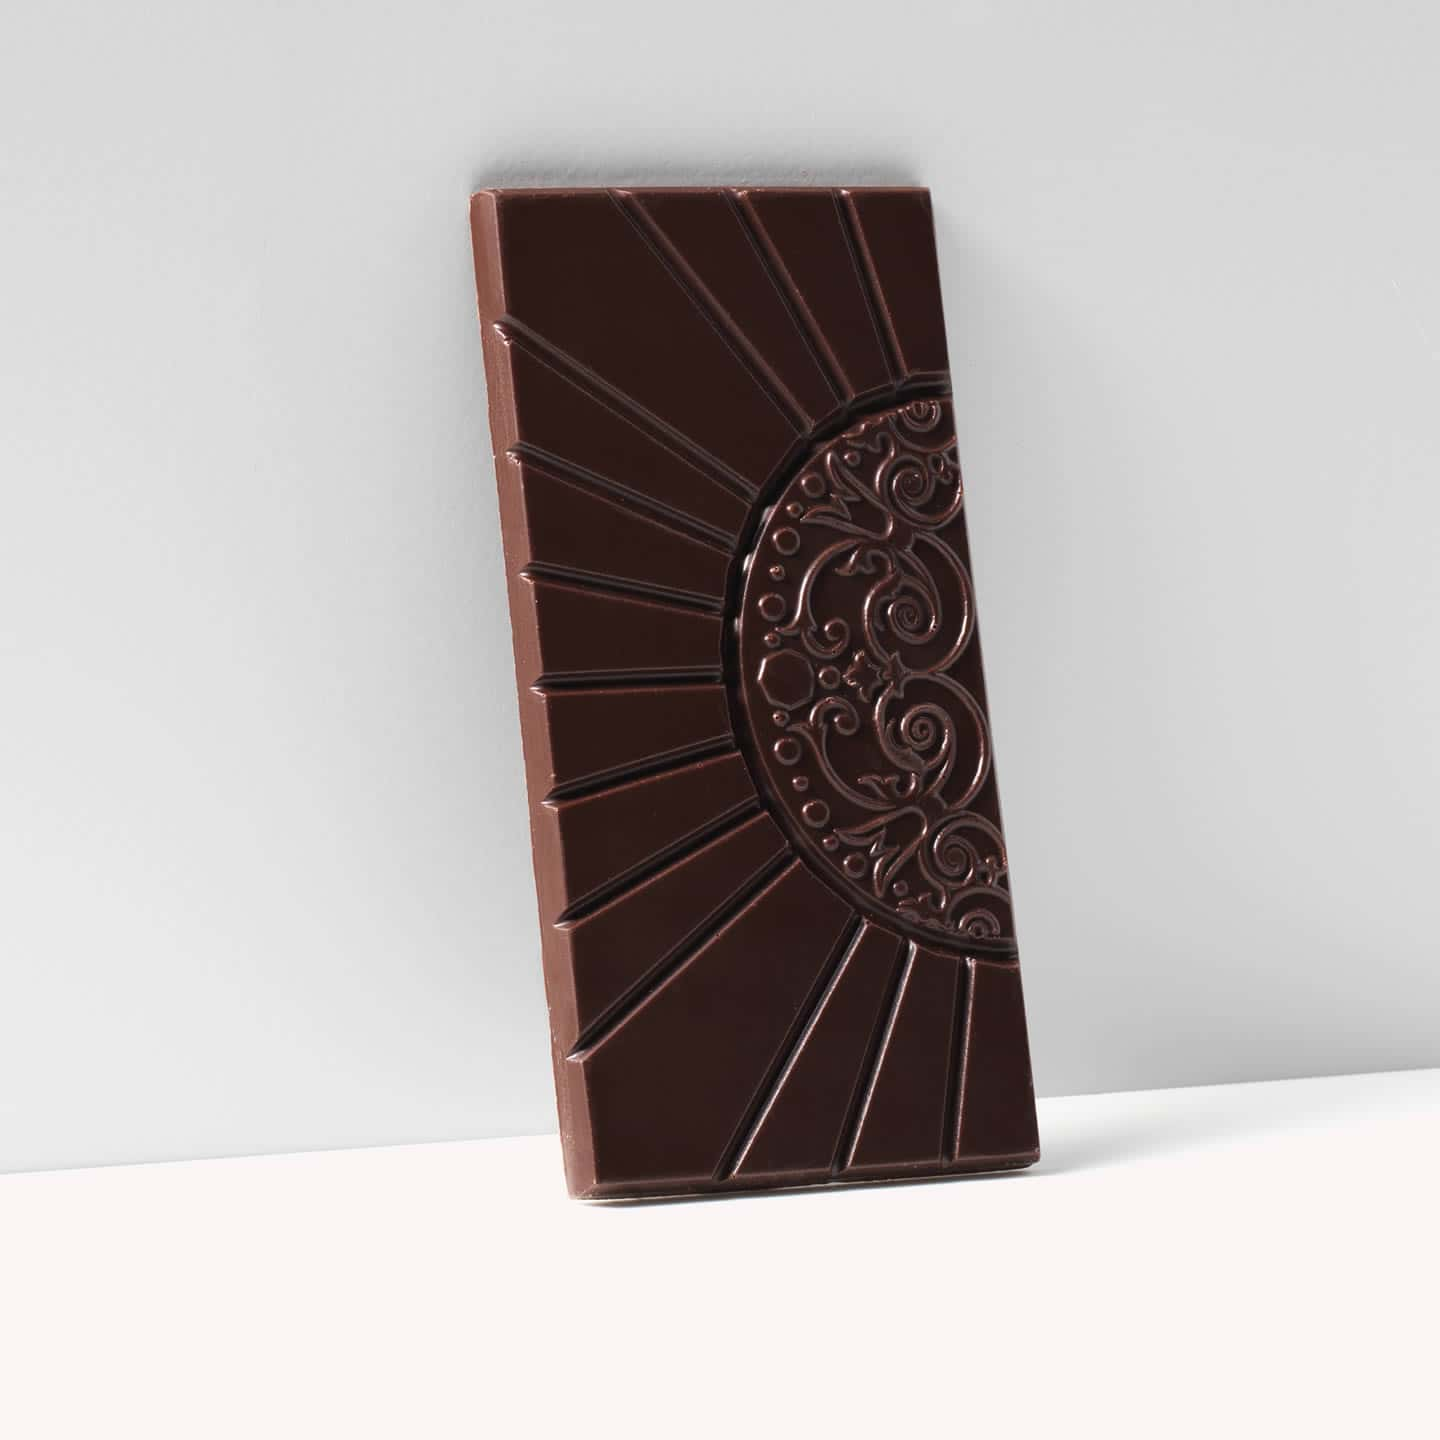 Tablette Chocolat Noir 75% Grand Cru origine Brésil 85g Bean to Bar